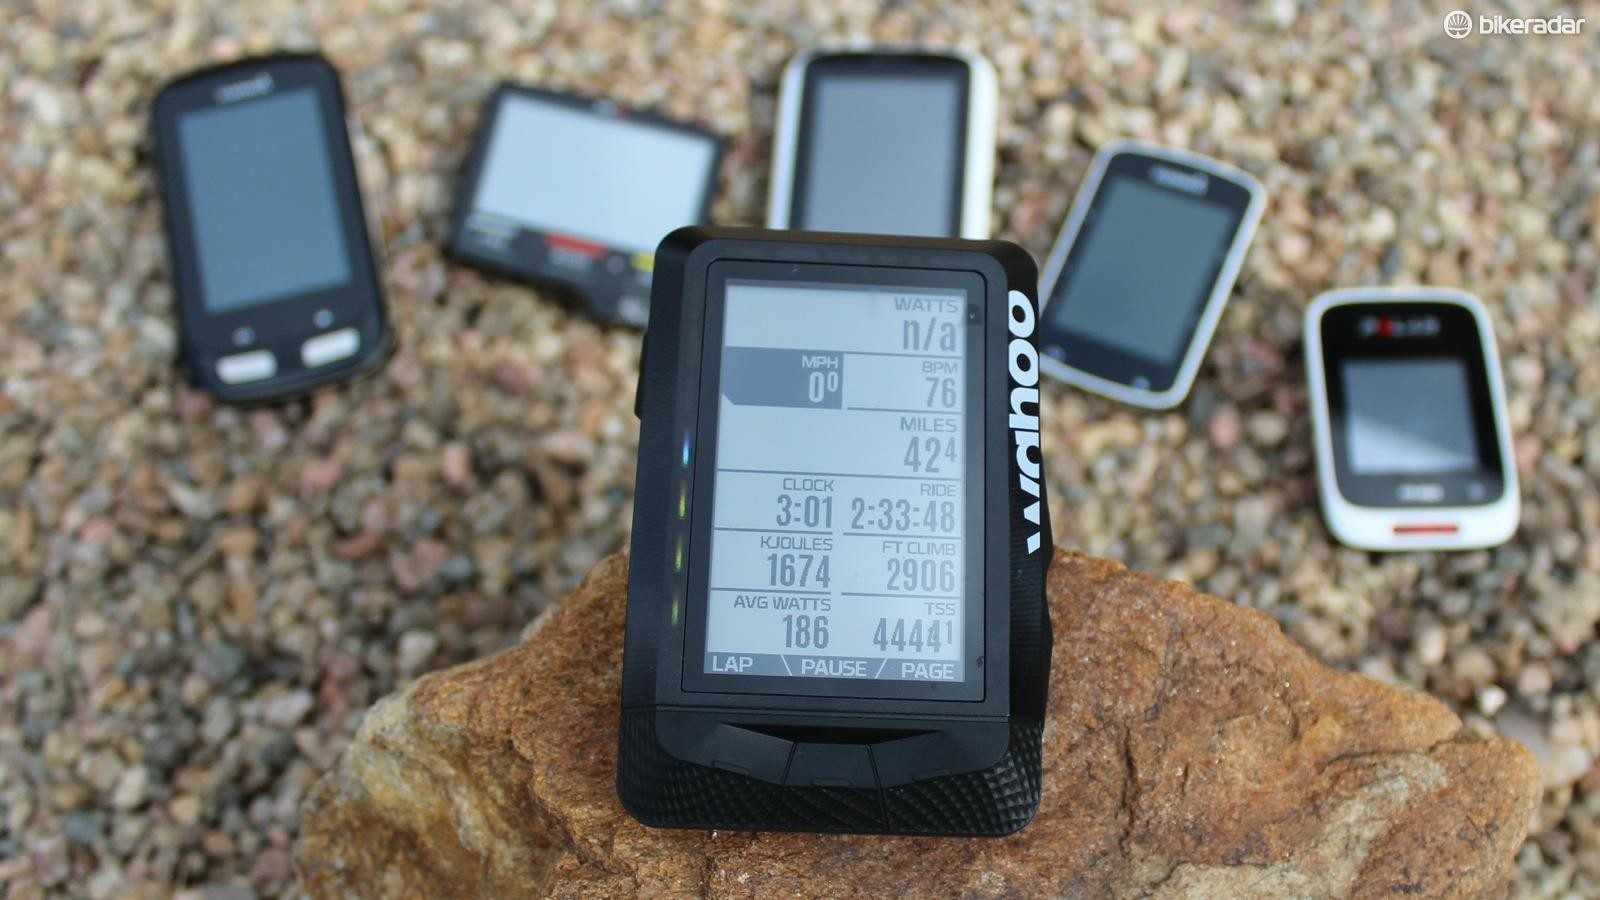 The Wahoo Elemnt began shipping this week, pushing its way into the GPS computer landscape